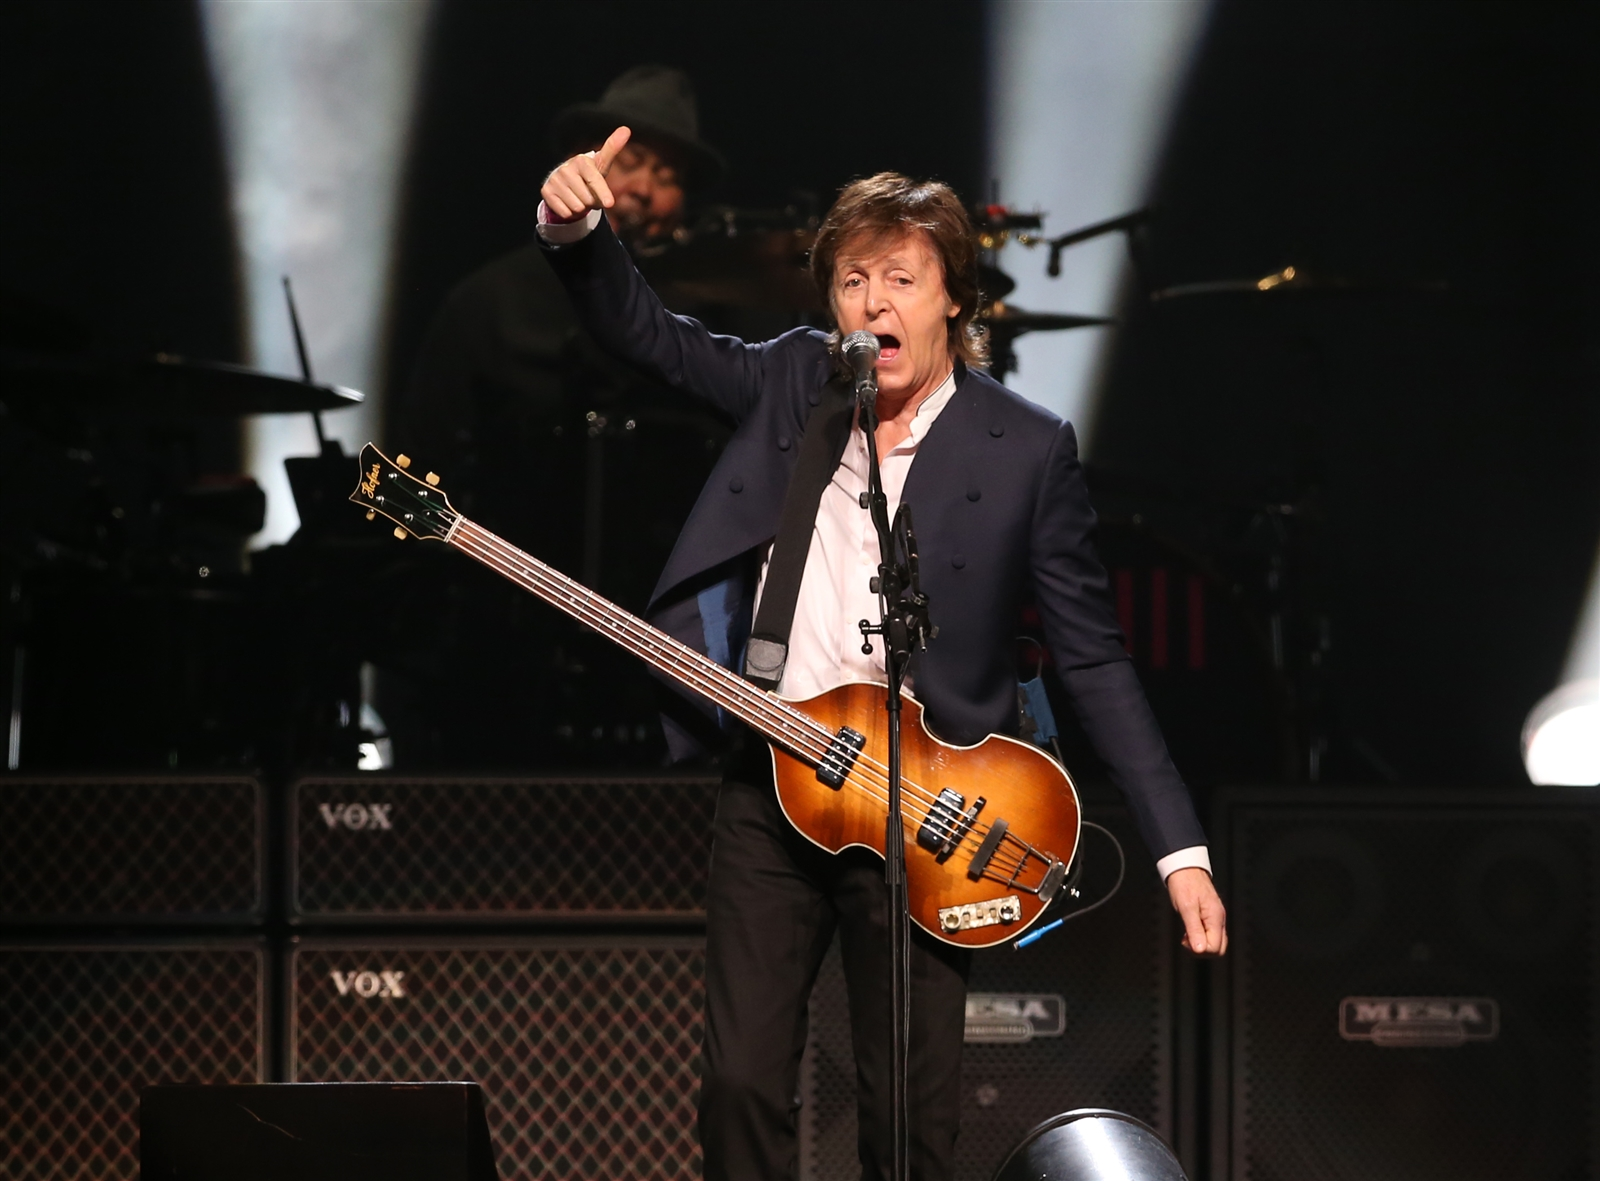 Paul McCartney during his 2015 show at First Niagara Center. (Sharon Cantillon/Buffalo News)